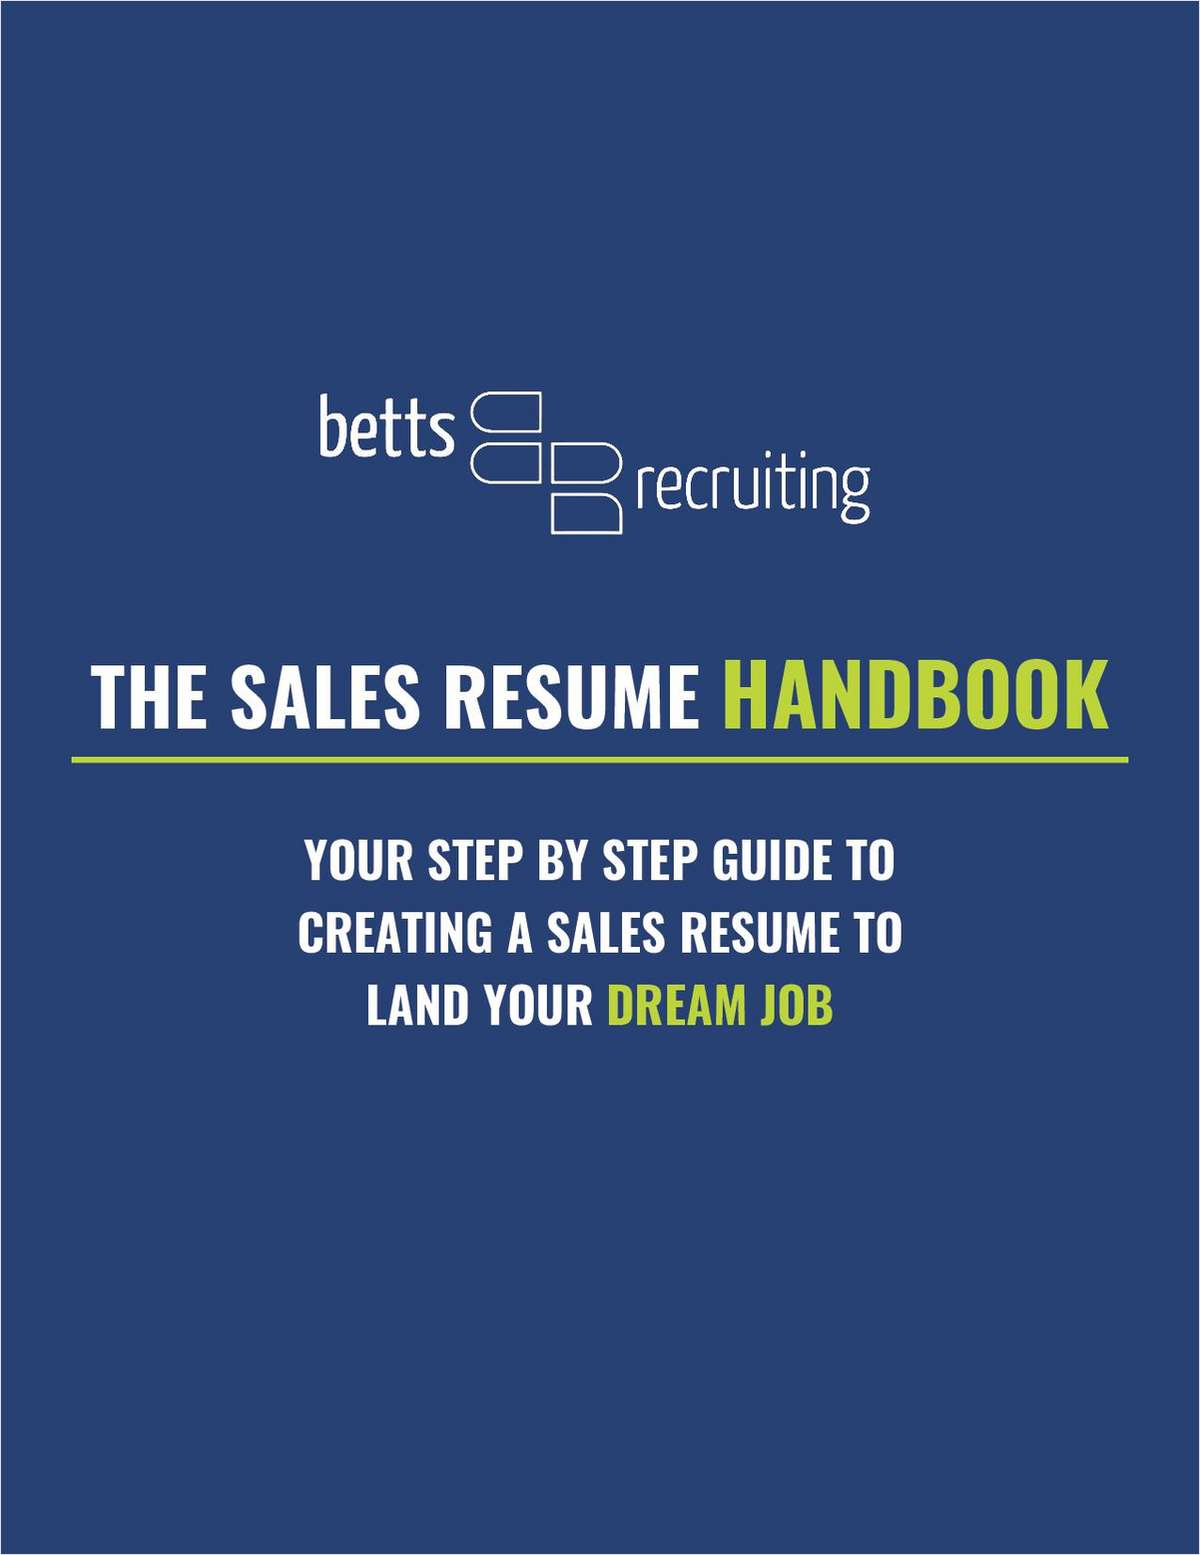 The Sales Resume Handbook